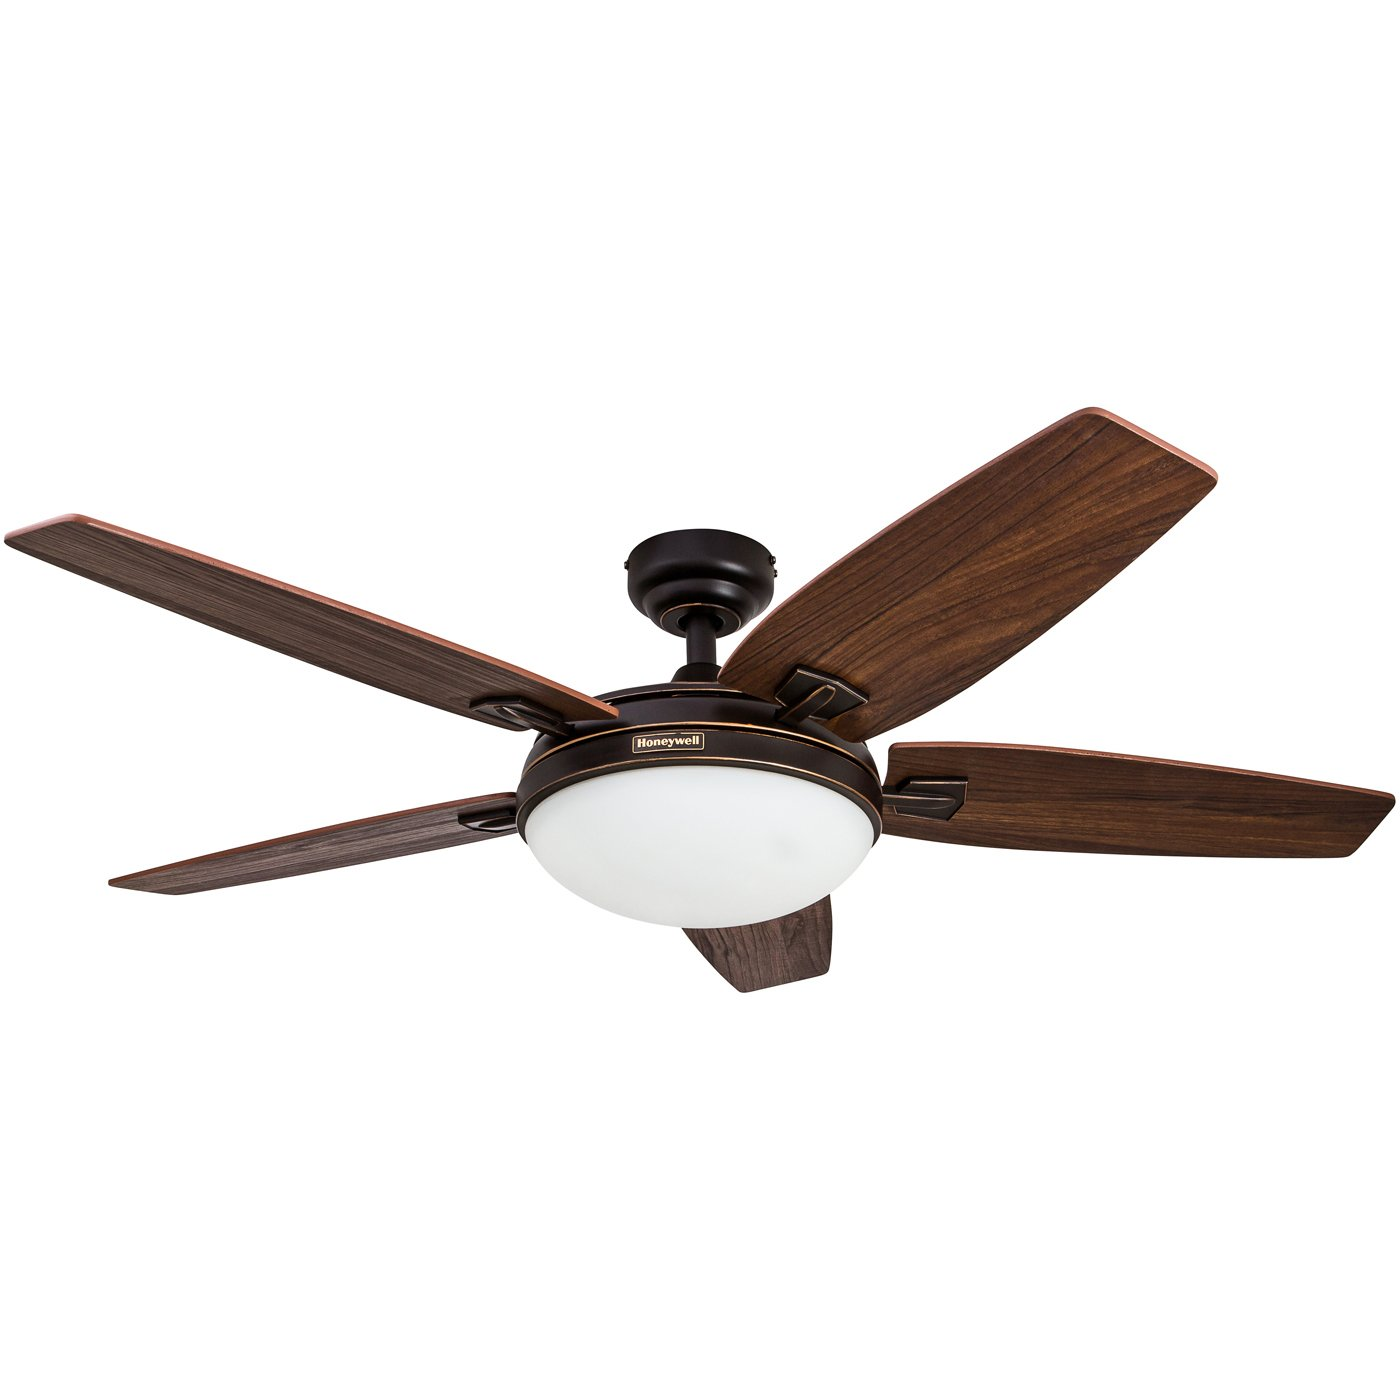 Honeywell Duvall 52-Inch Tropical Ceiling Fan, Five Wet Rated Wicker Blades, Indoor/Outdoor, White by Honeywell Ceiling Fans (Image #8)